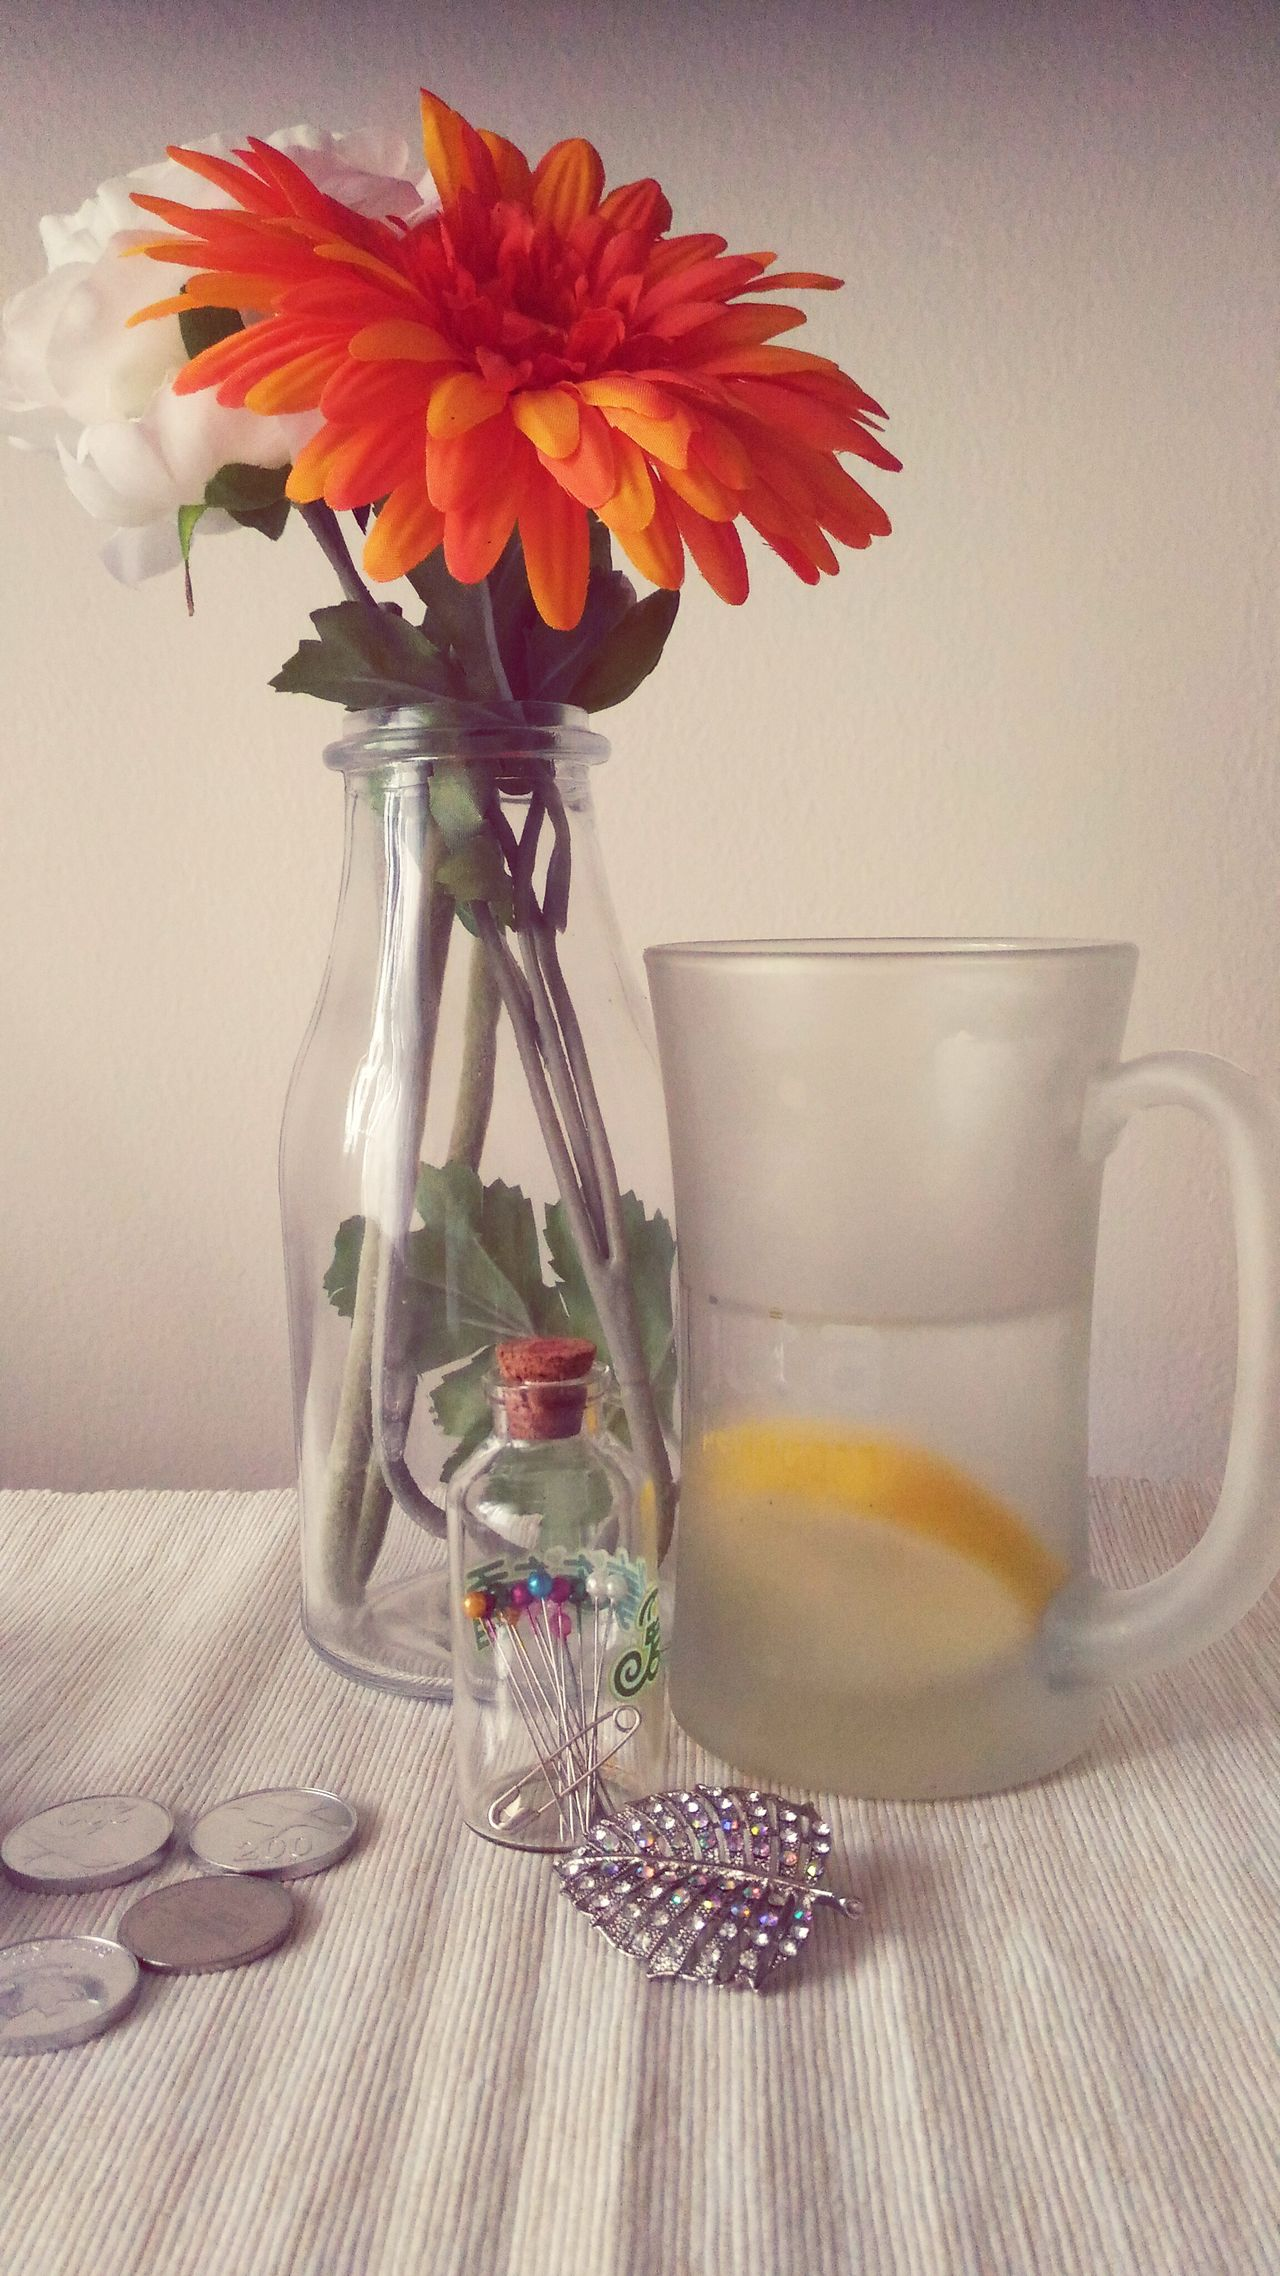 On the busy and buzz day...why I still feel lonely? I am waiting for you... Flower Indoors  Personal Perspective Lifestyles Eye For Photography City Apartment Life Lemonwater Brooches